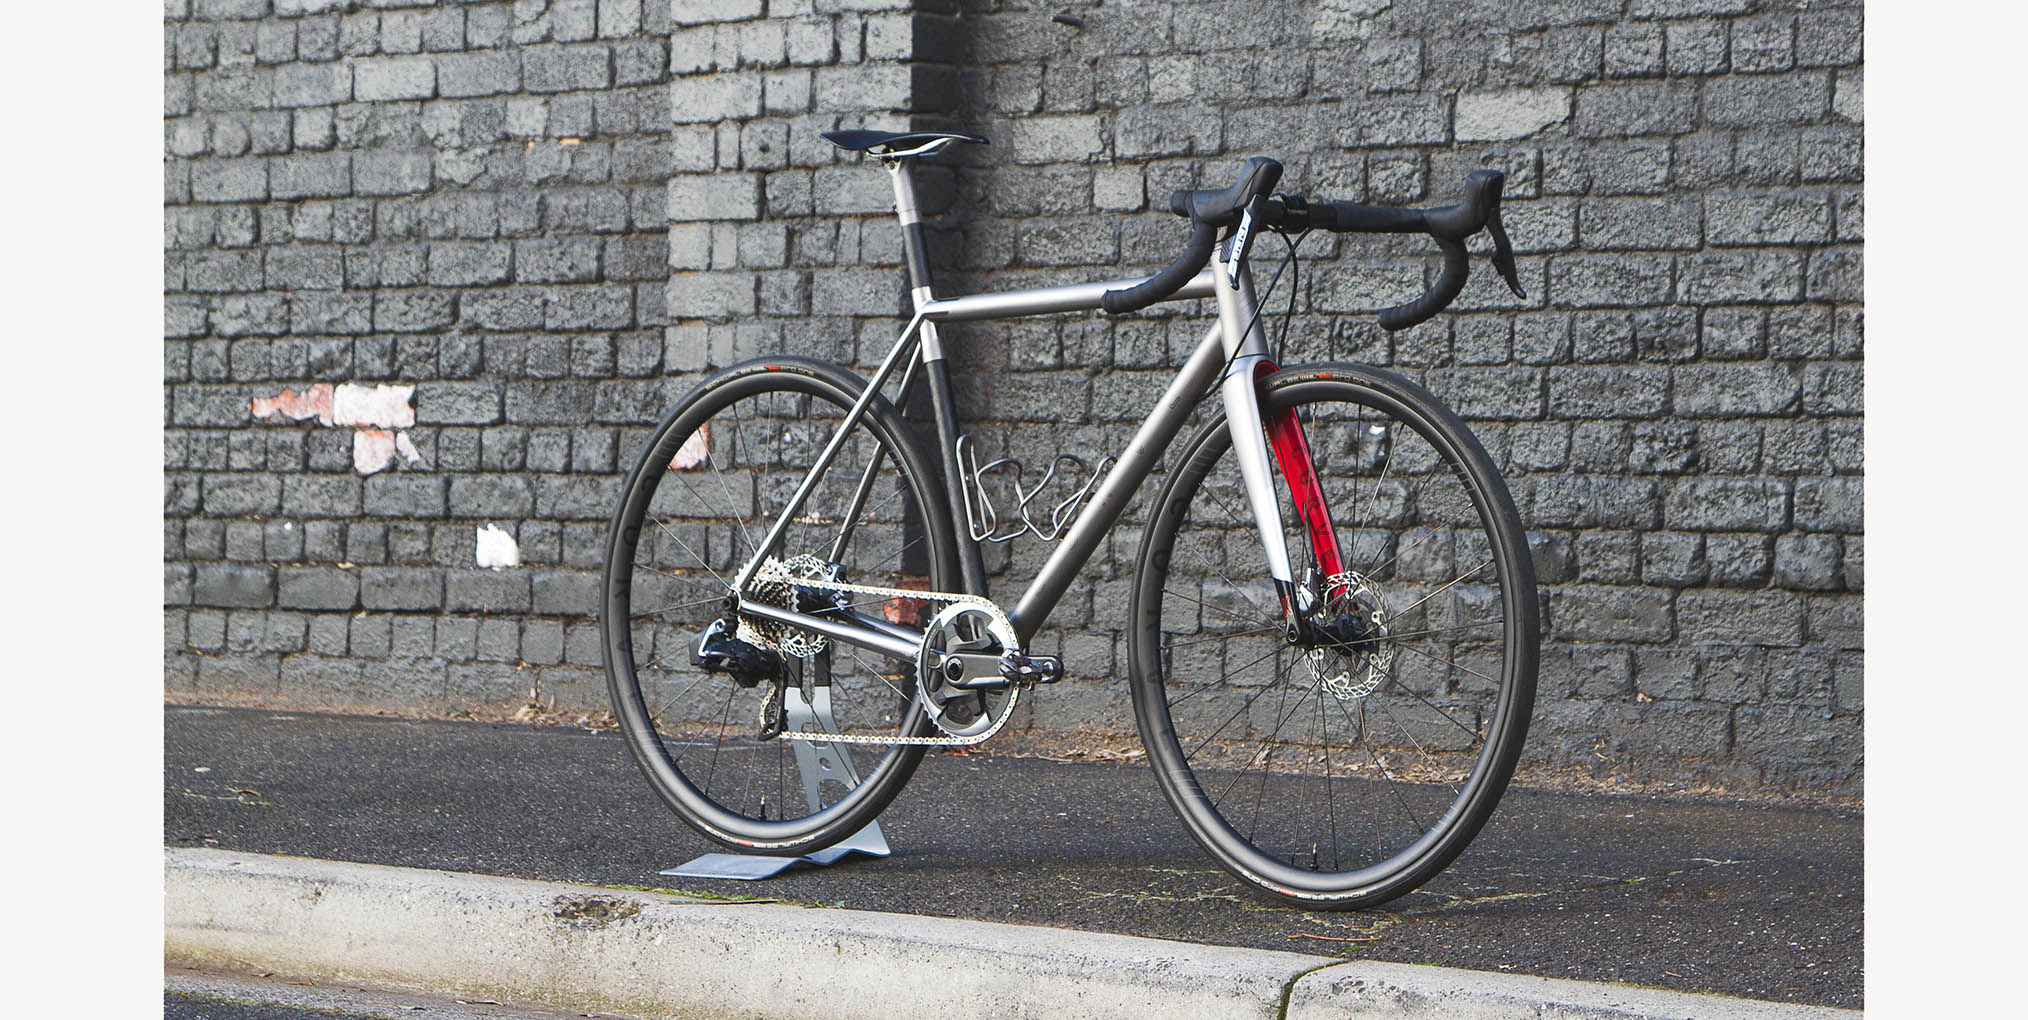 Belgie Air Titanium Carbon Road Bike collab with Bastion Cycles